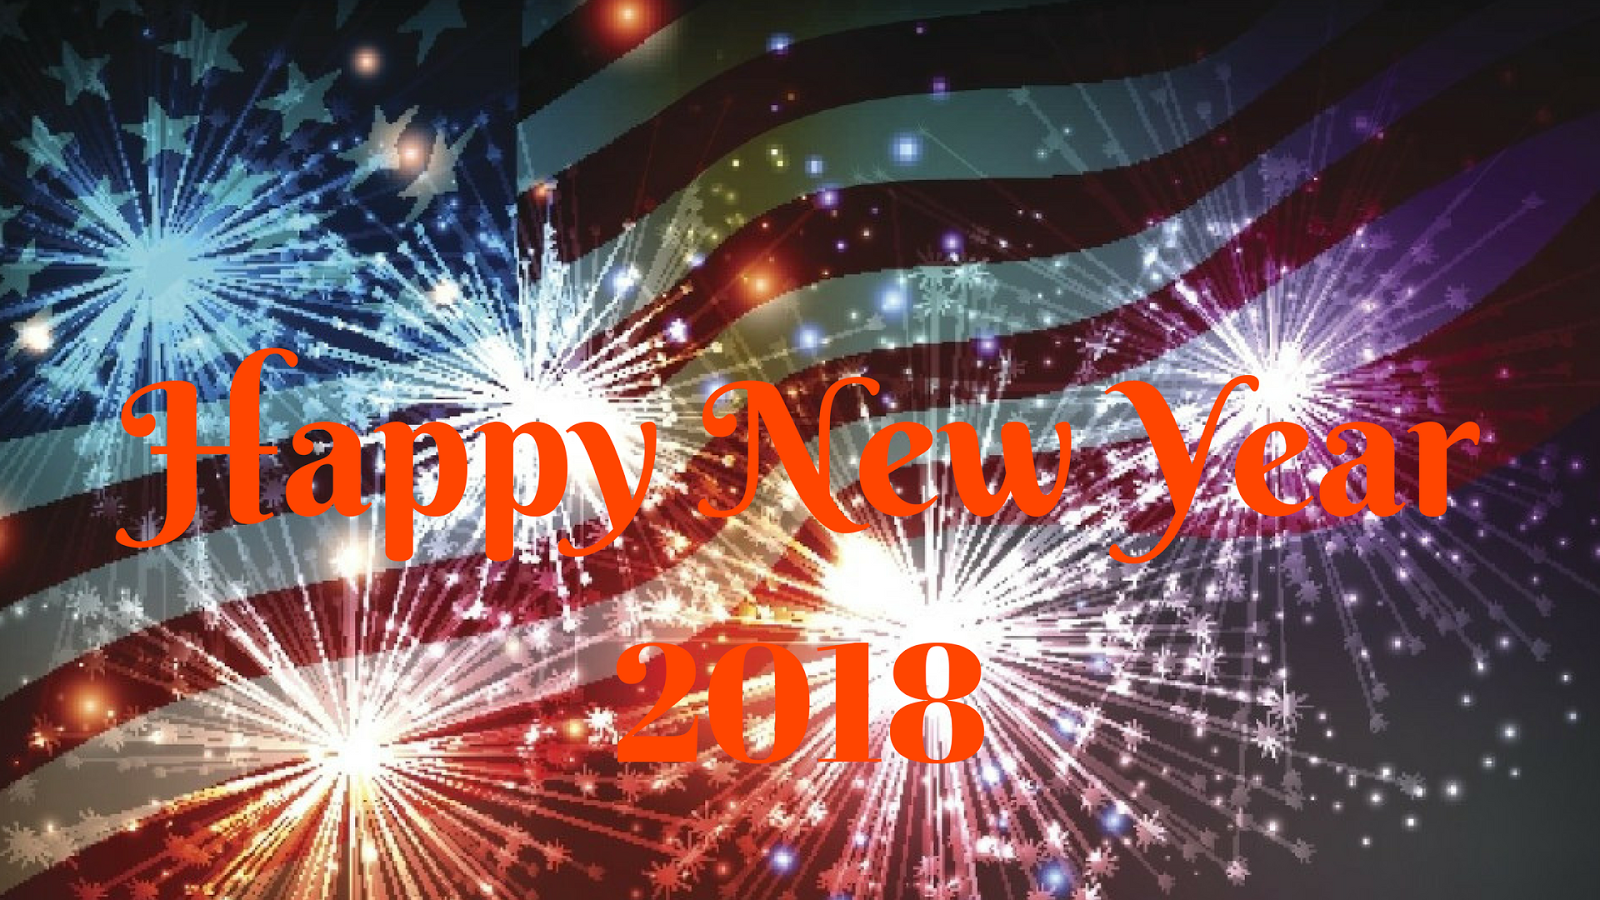 happy new year 2018 hd wallpaper 6 happy new year 2018 hd wallpaper with united states flag background this is free to download and you can use anywhere